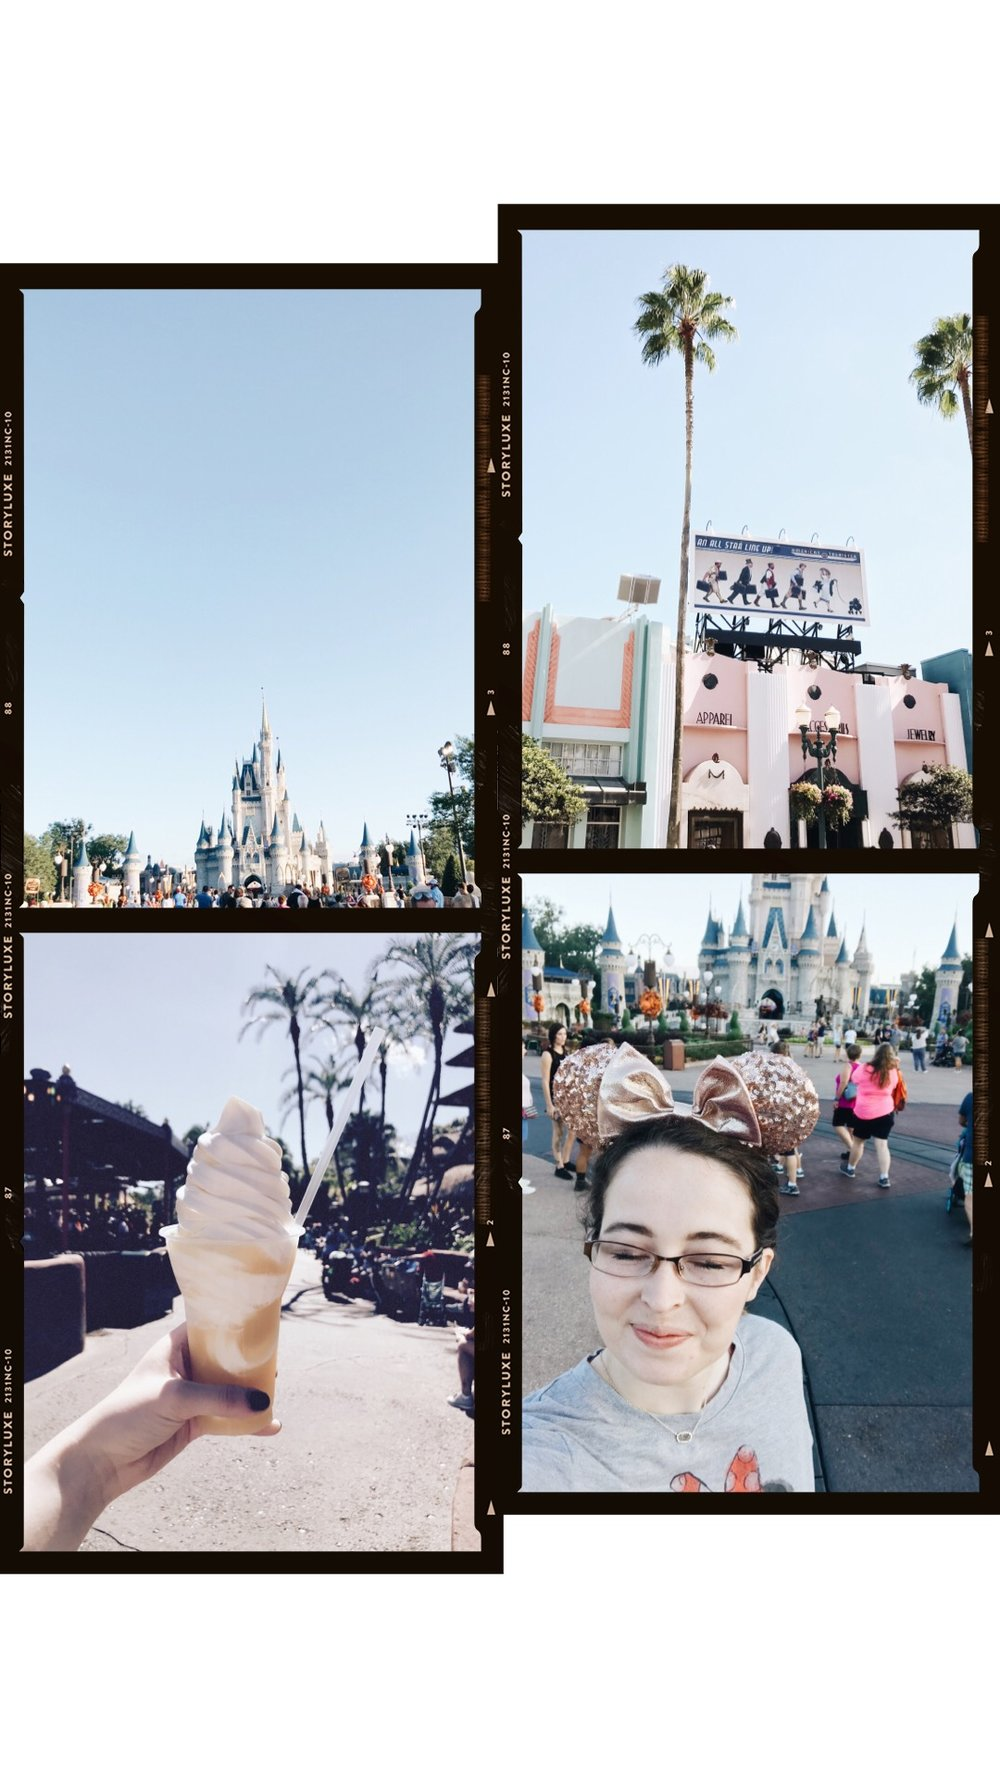 Walt Disney World Trip 2018.JPG